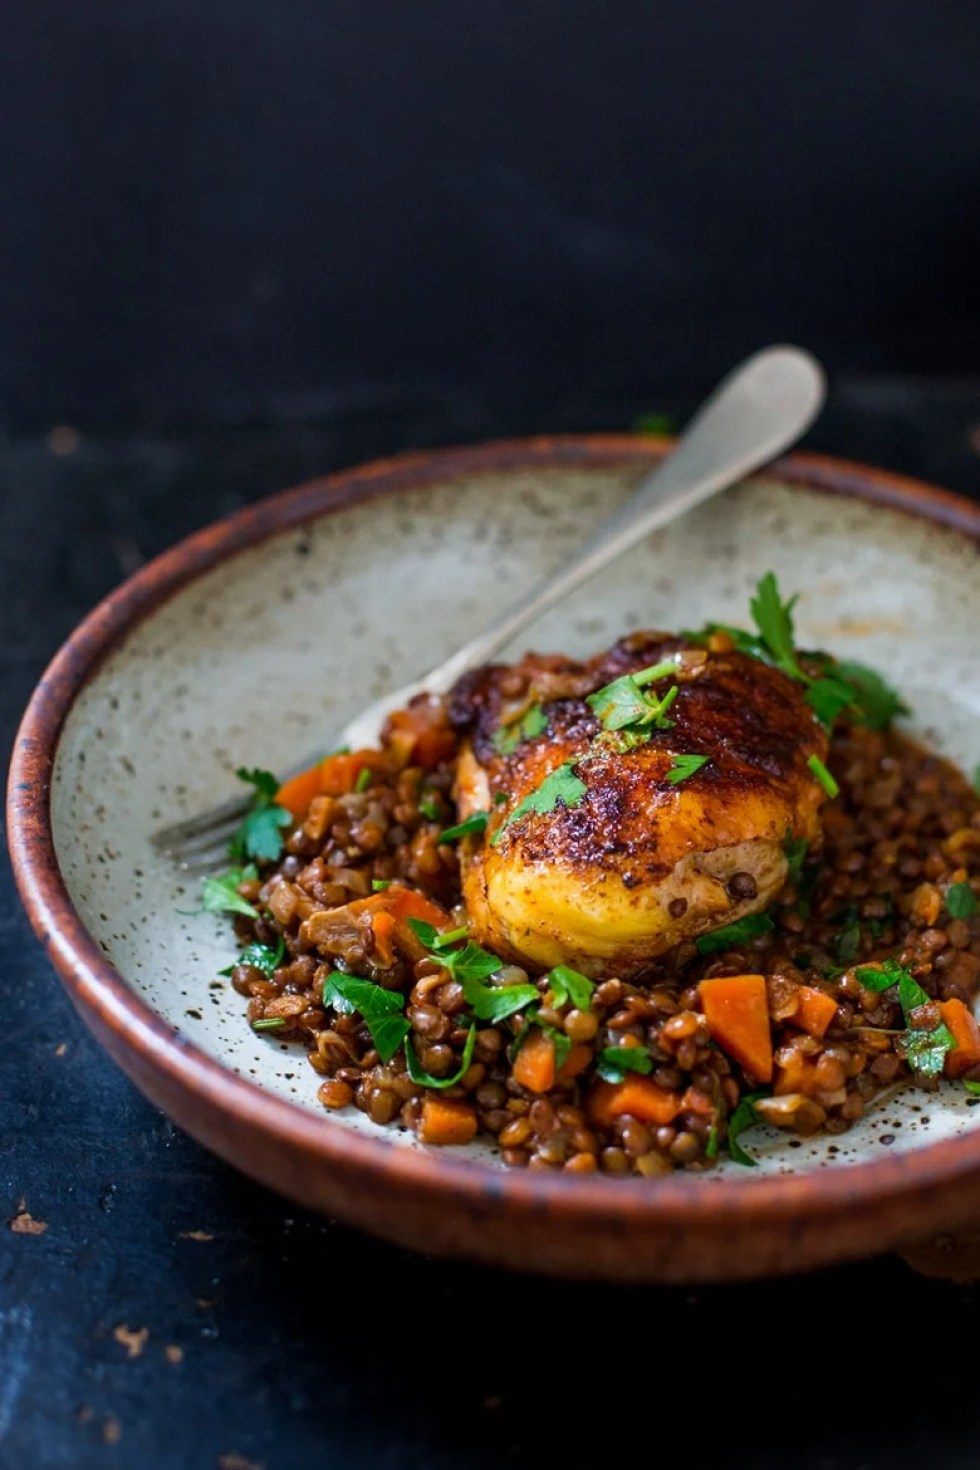 A deliciously flavorful recipe for Berbere Chicken over Ethiopian spiced Lentils with an easy recipe for Berbere Spice Blend.   www.feastingathome.com